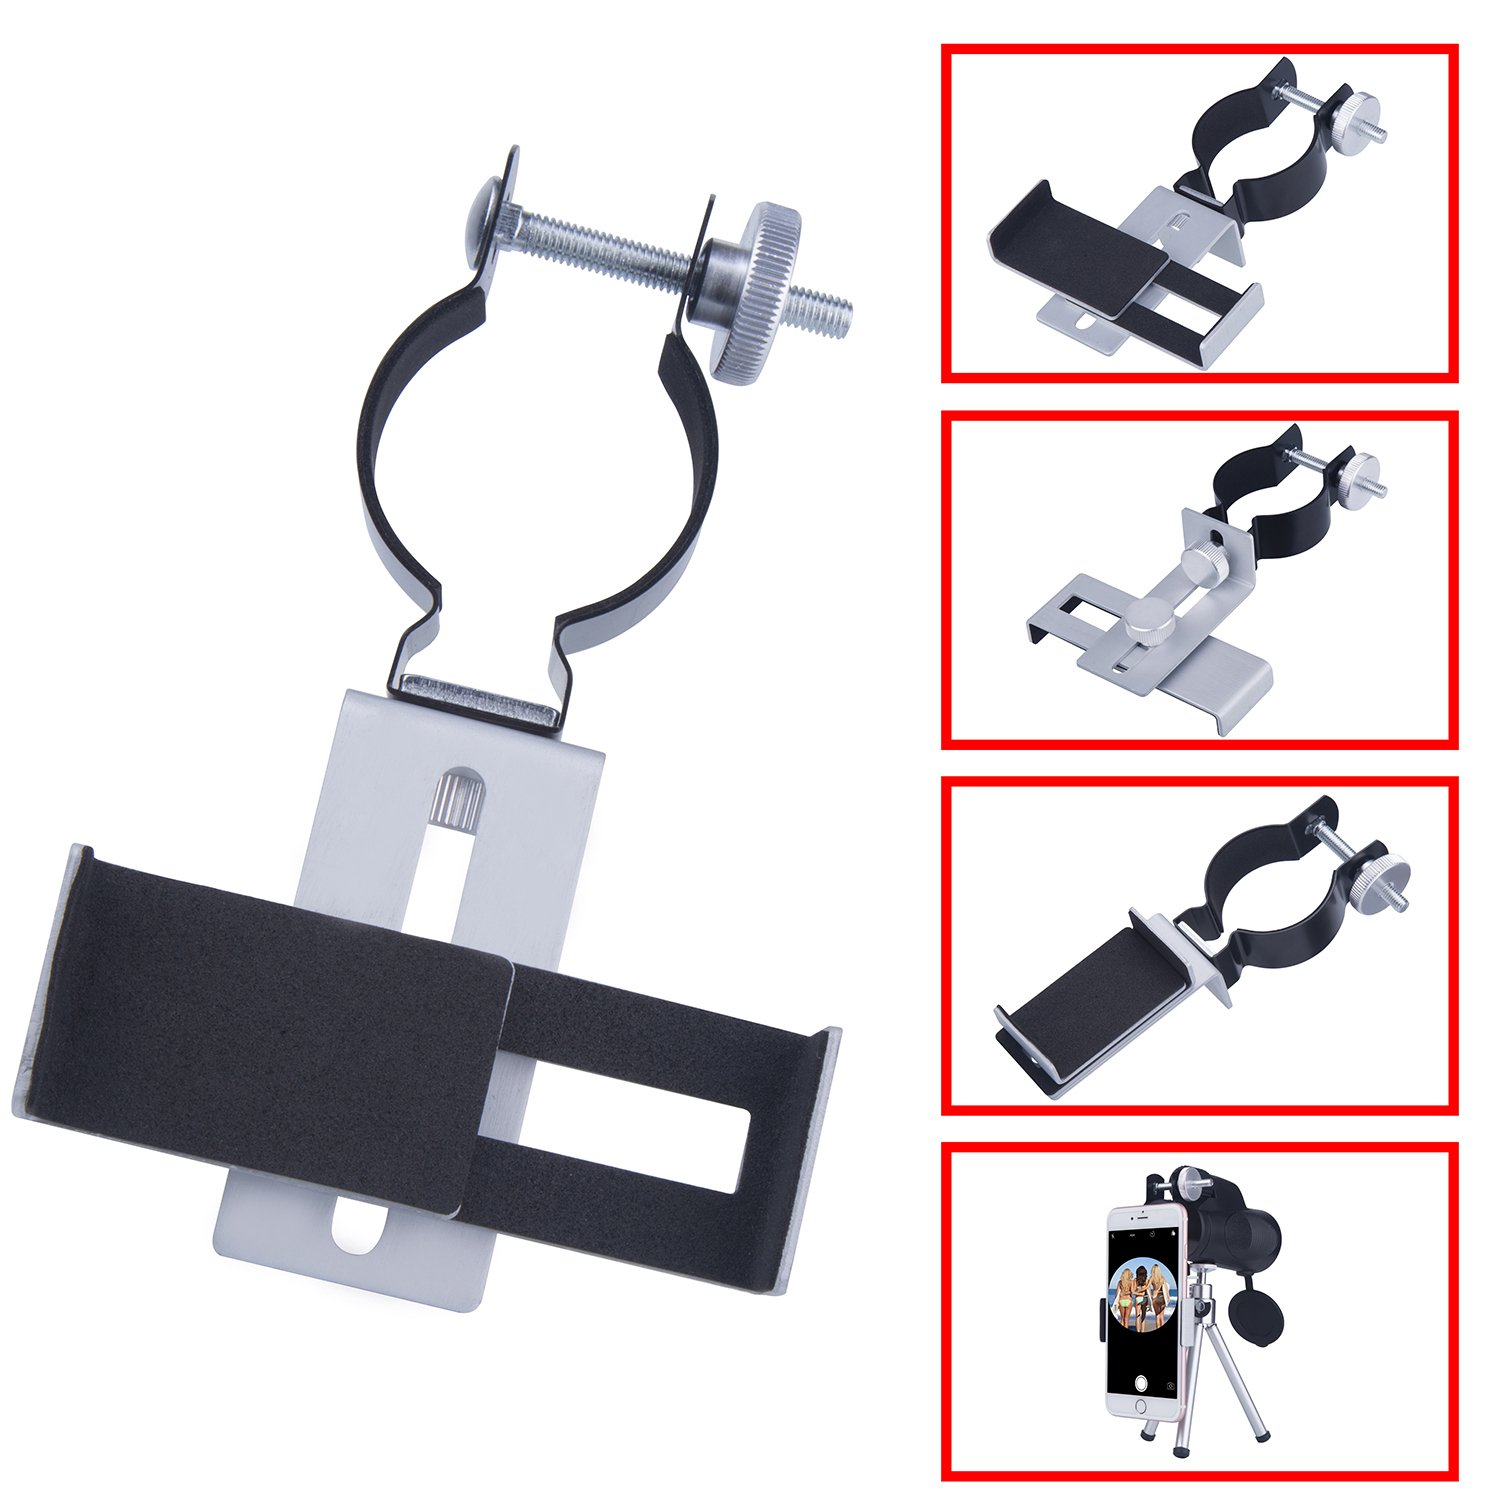 Ueasy Metal Smartphone Adapter for Microscope Binocular Spotting Scope Monocular Telescope Connector Shooting Hunting Cellphone Holder for Iphone Sony Samsung Huawei LG Xiaomi(Big)